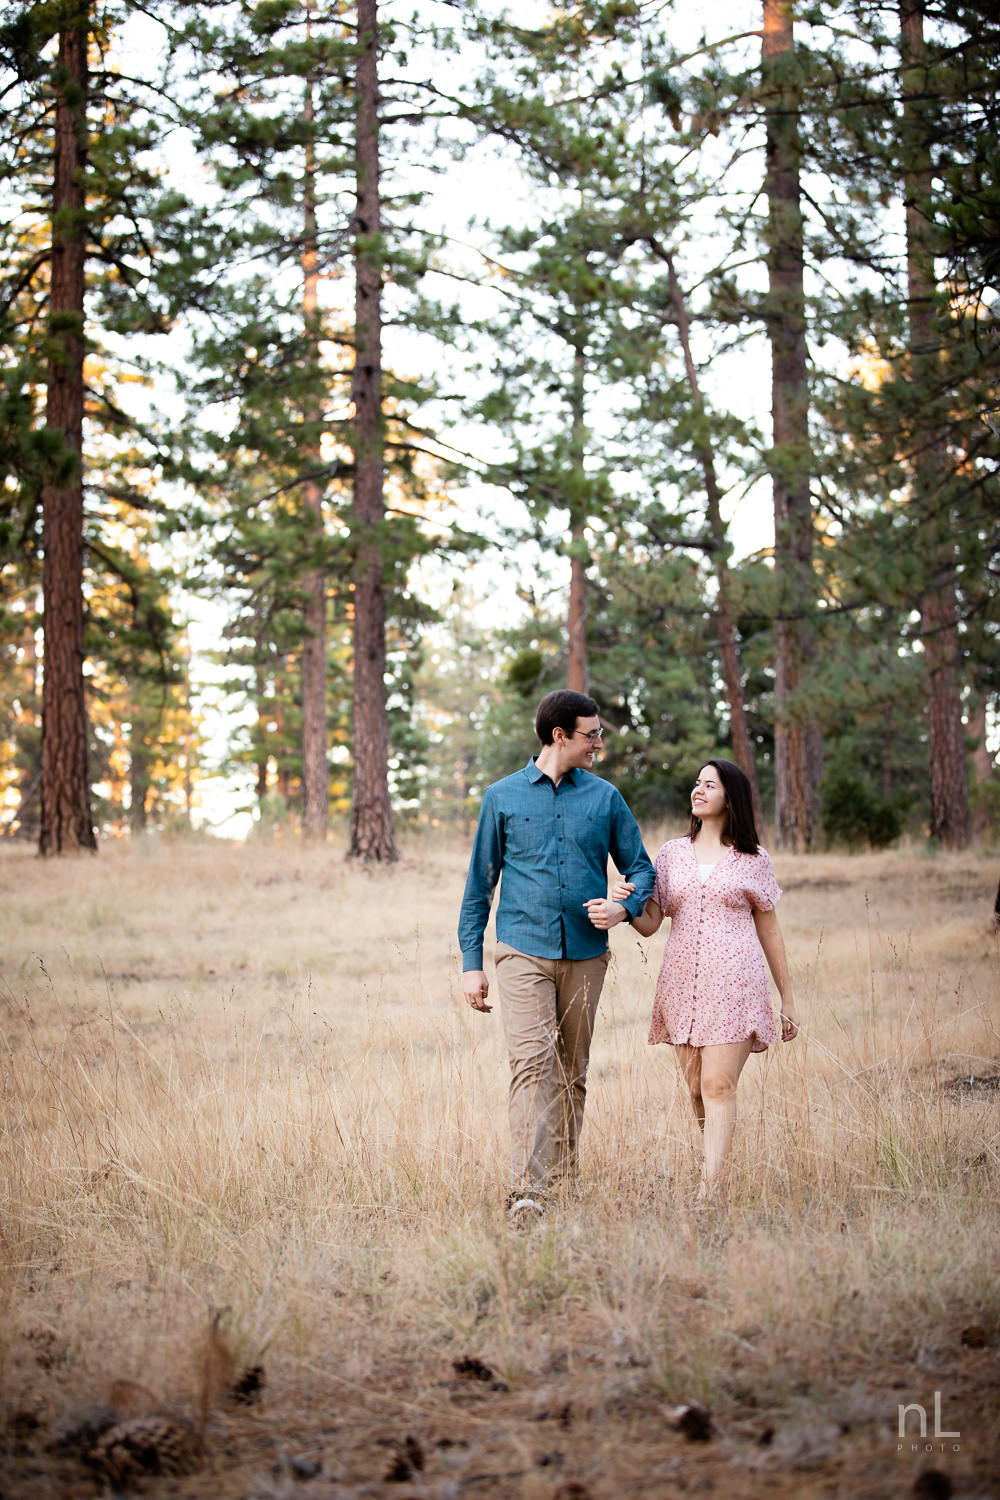 los-angeles-national-forest-engagement-photography-couple-walking-in-wheat-clearing-trees